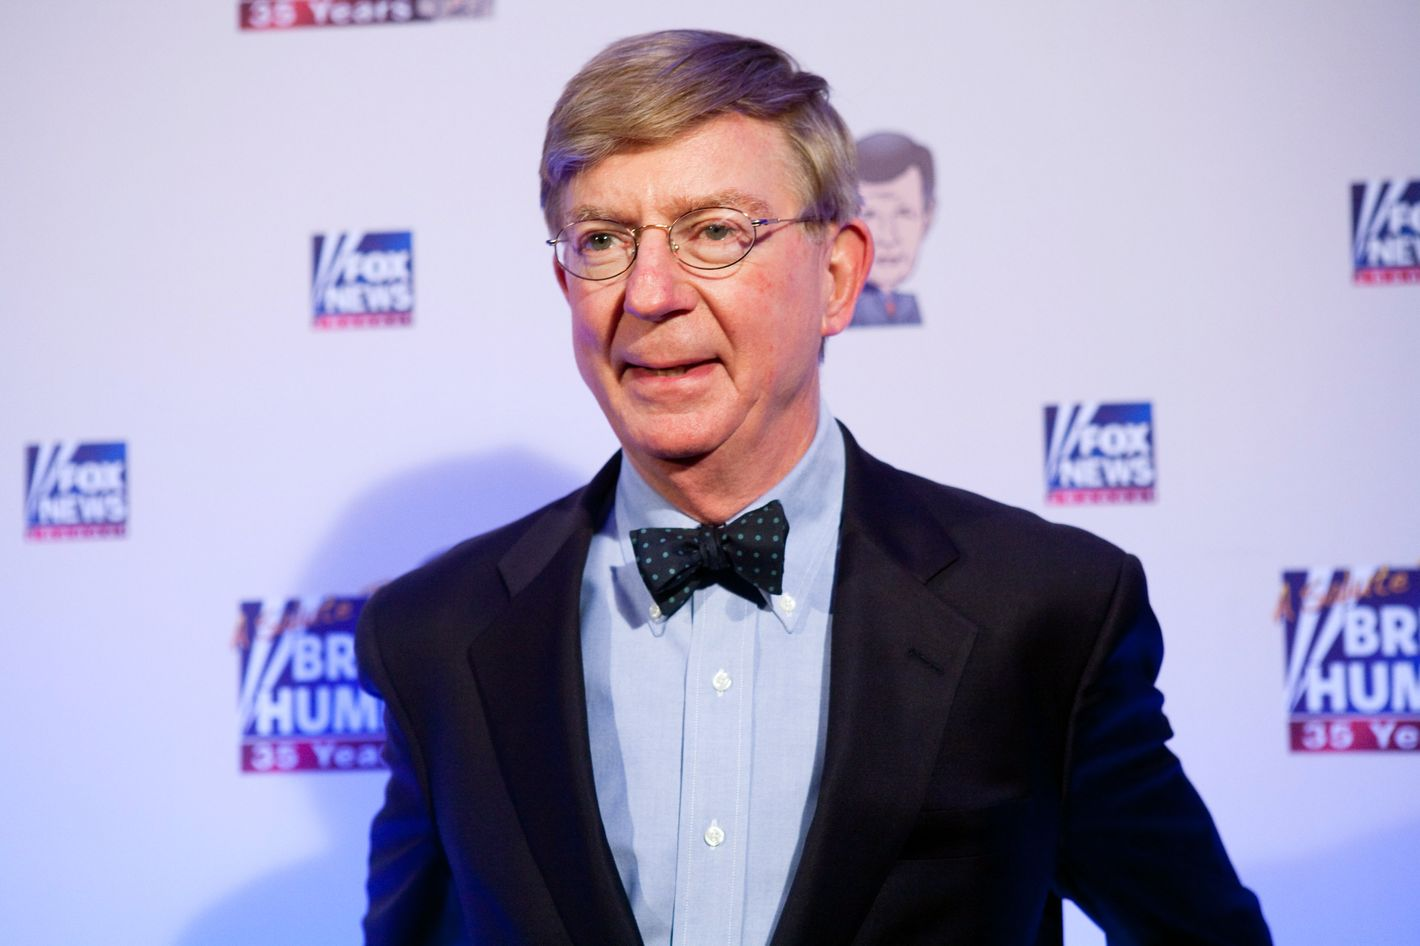 Conservative newspaper columnist George Will poses on the red carpet upon arrival at a salute to FOX News Channel's Brit Hume on January 8, 2009 in Washington, DC. Hume was honored for his 35 years in journalism.